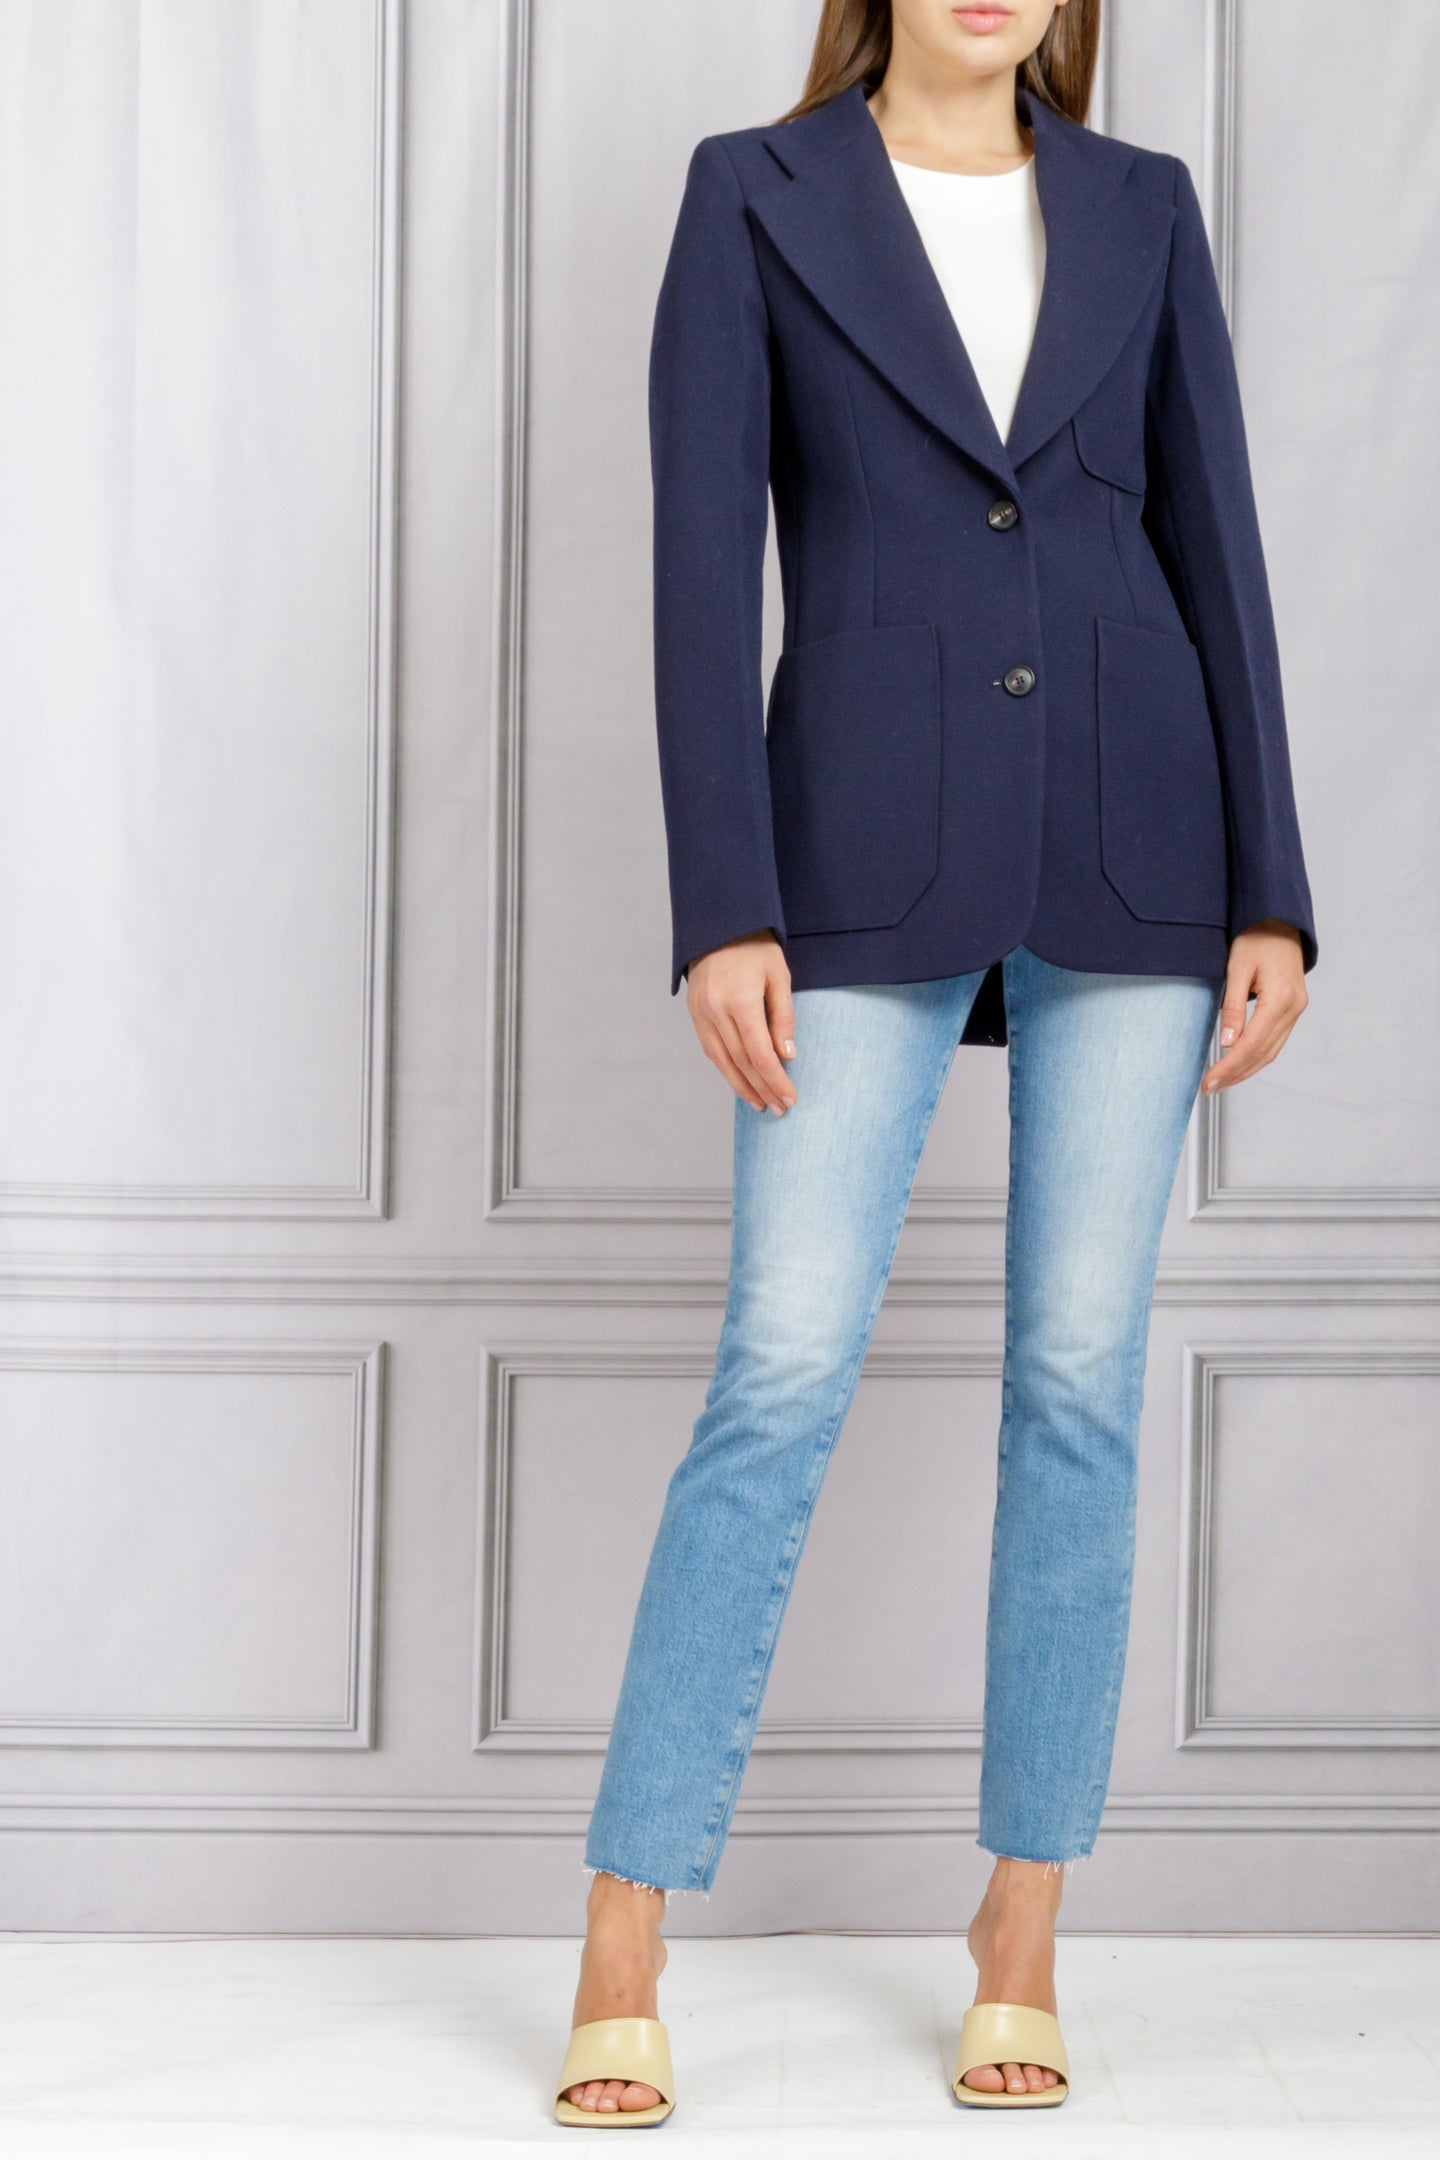 Patch Pocket Detail Blazer - Dark Navy